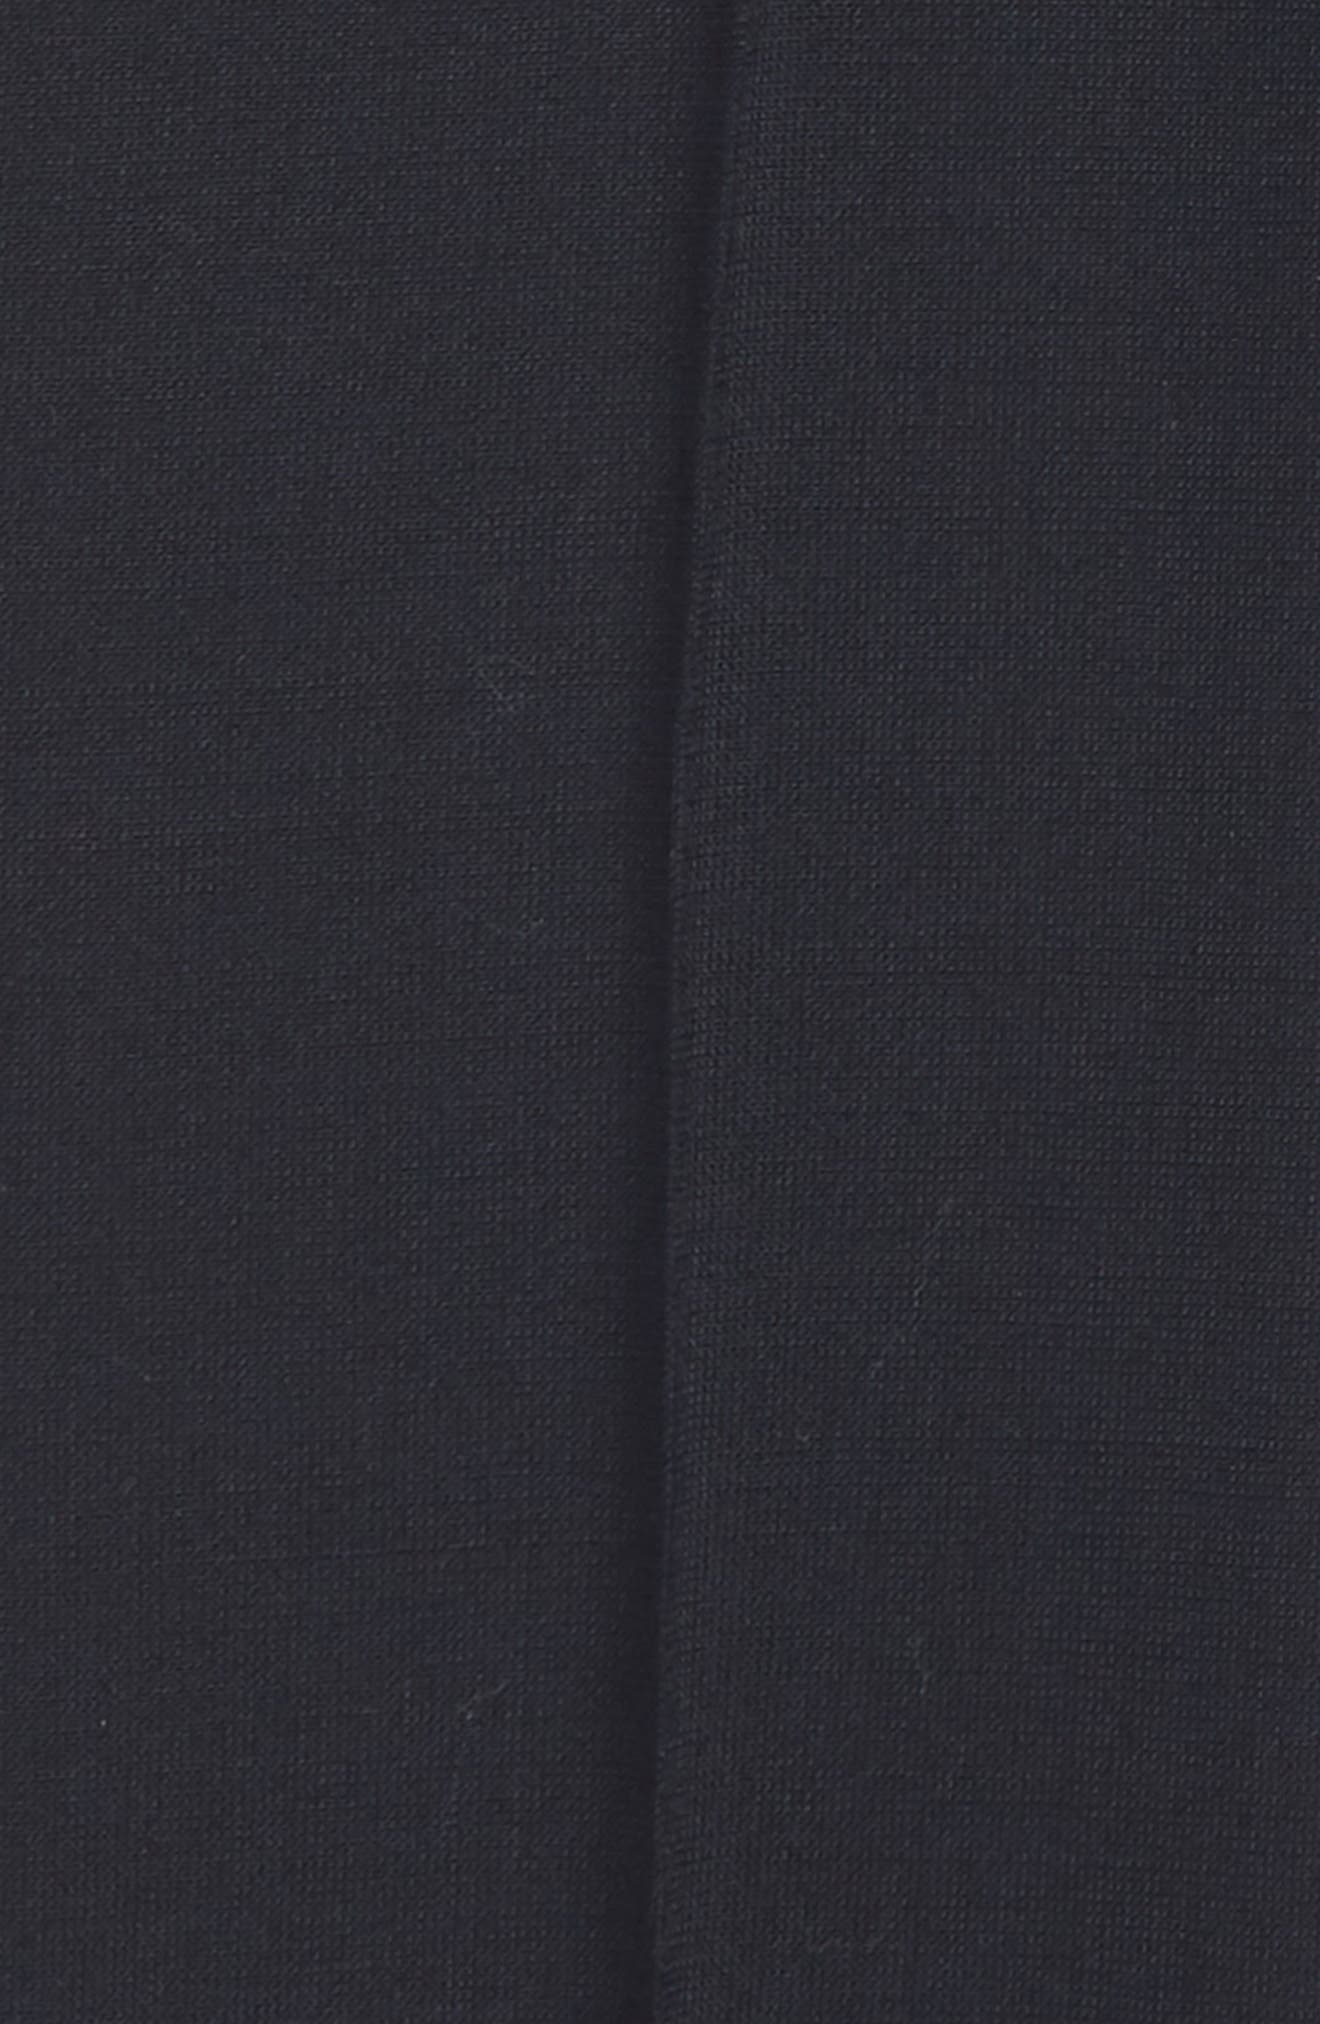 Solid Flat Front Wool Blend Trousers,                             Alternate thumbnail 2, color,                             BLACK